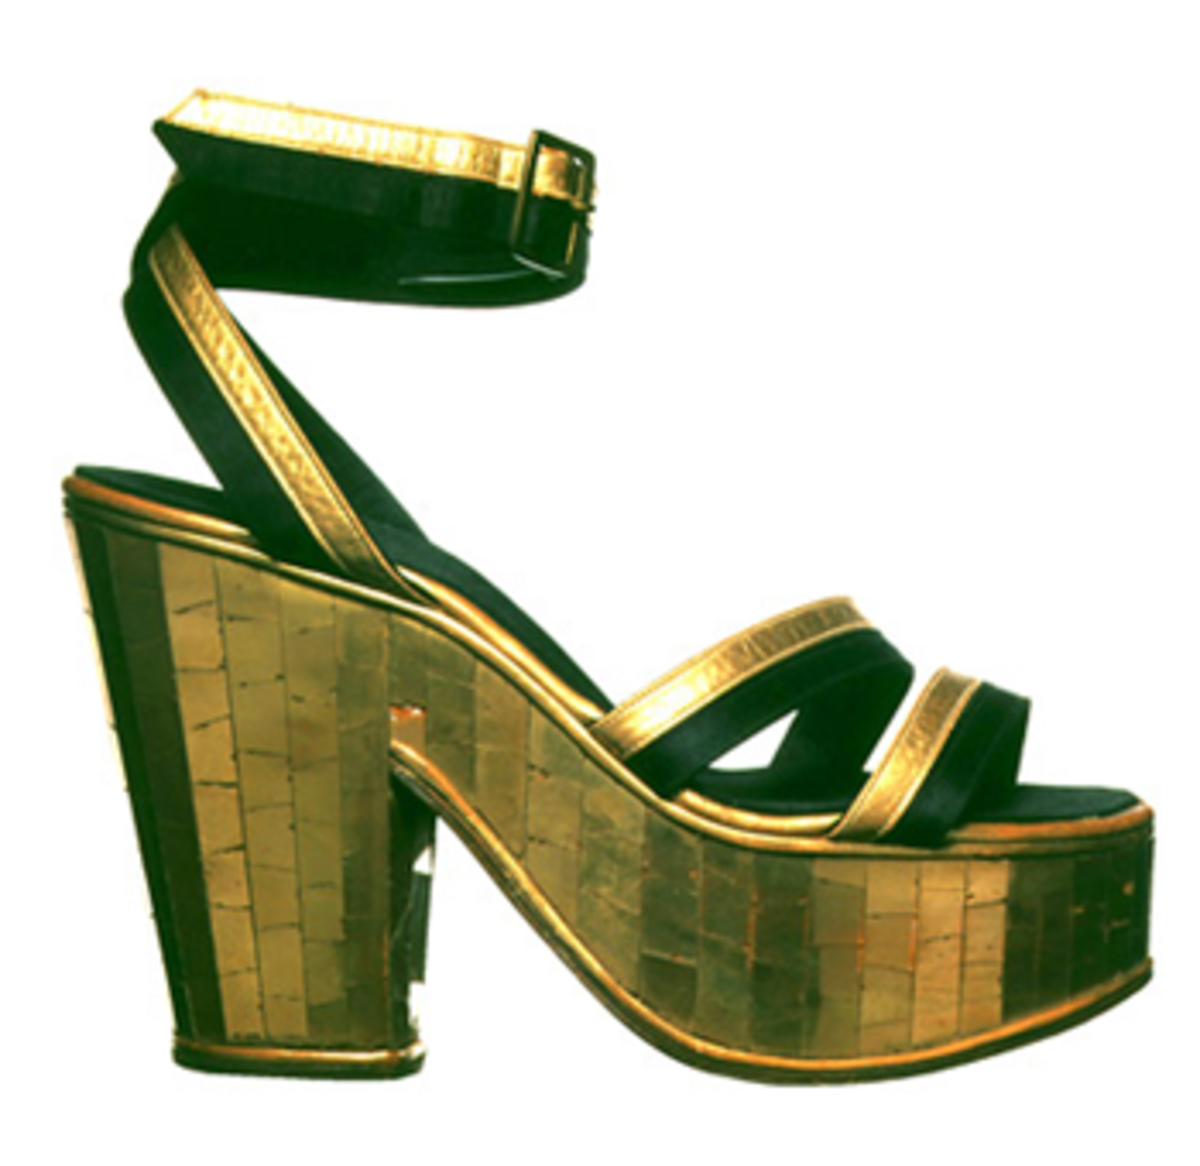 1938 shoe designed for Carmen Miranda made from gilded glass mosaic cork heel with gold kid and black silk upper.